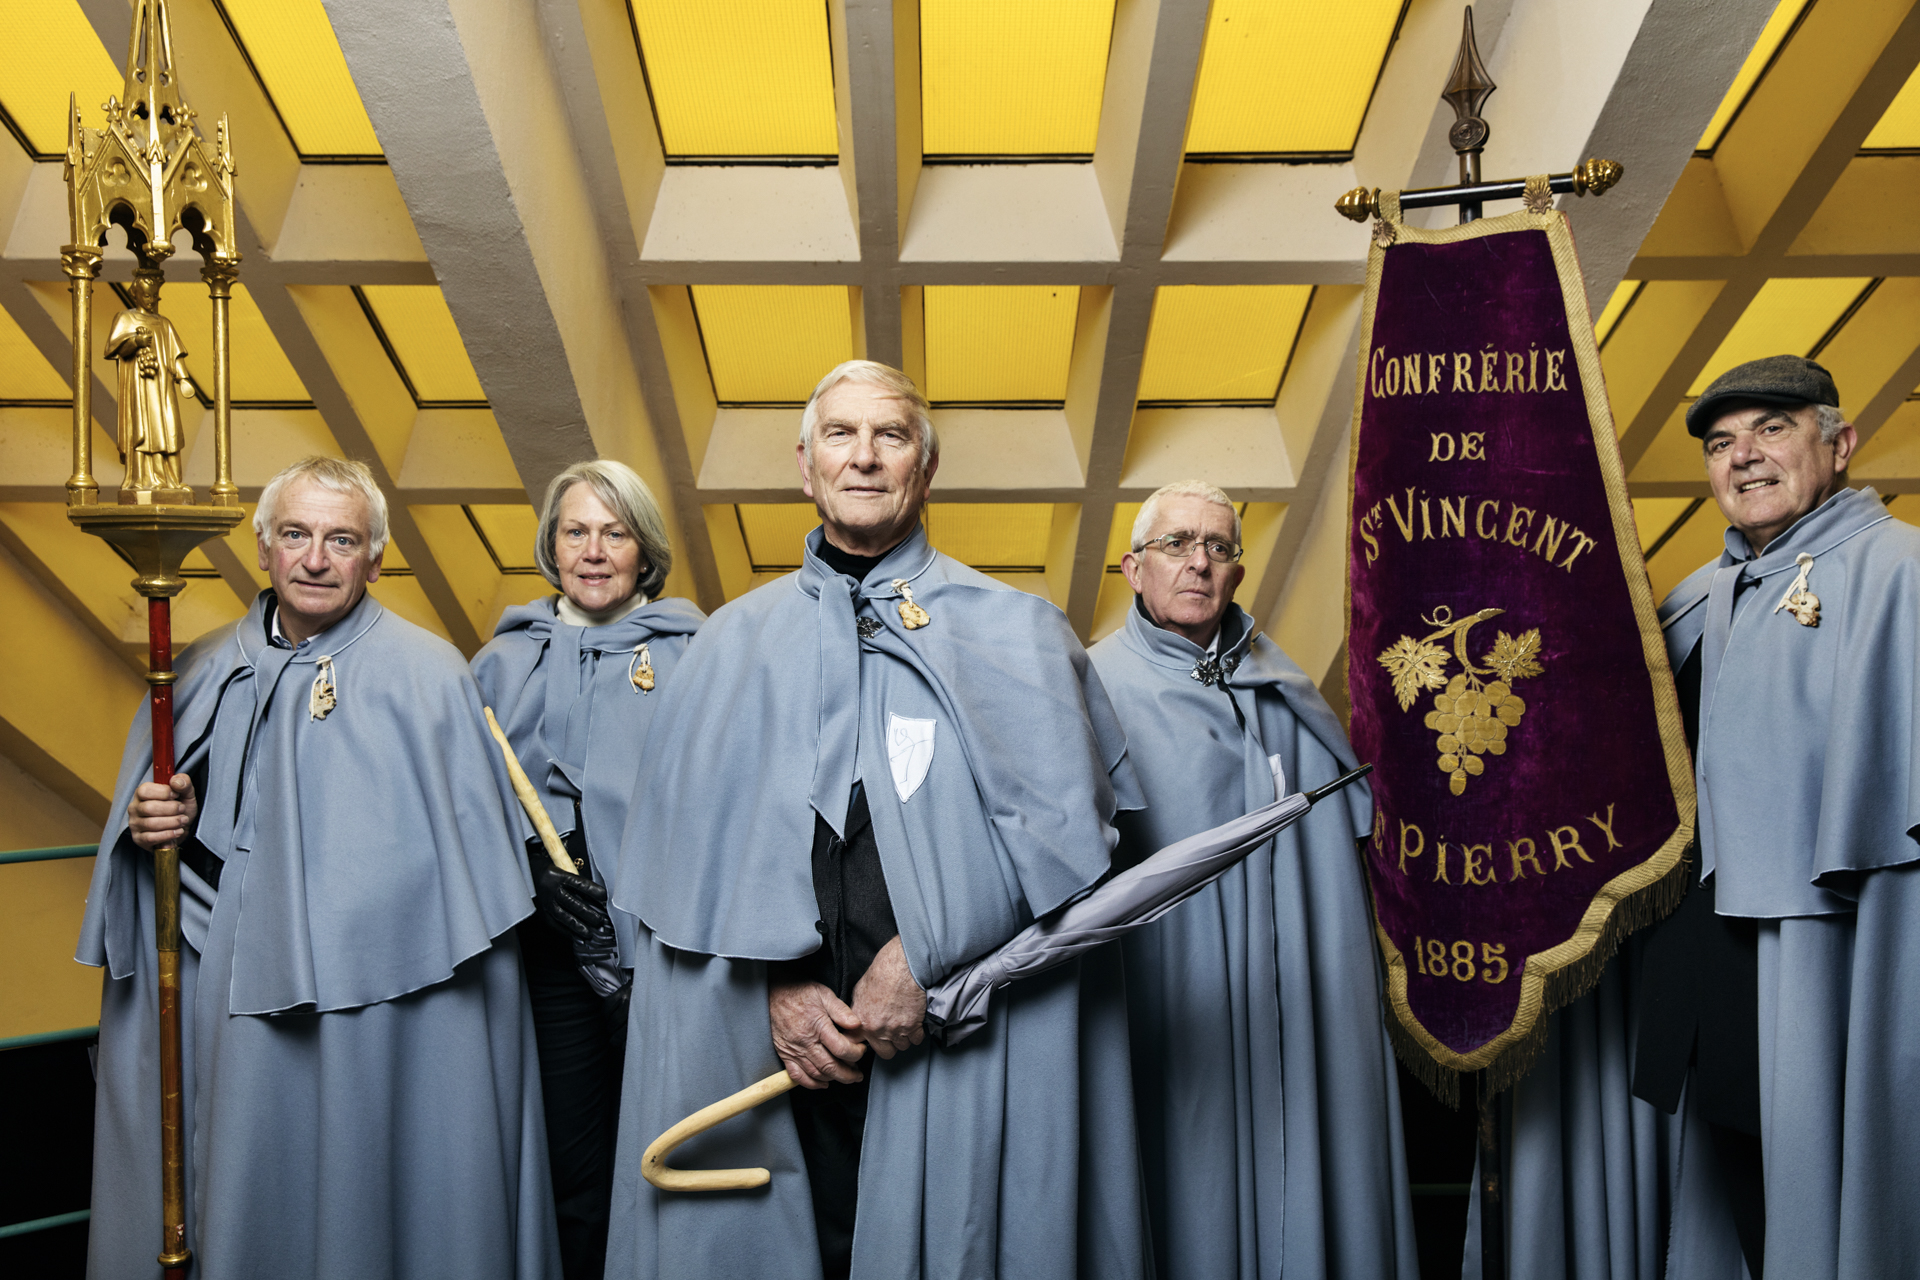 The St Vincent guild of Champagne winemakers